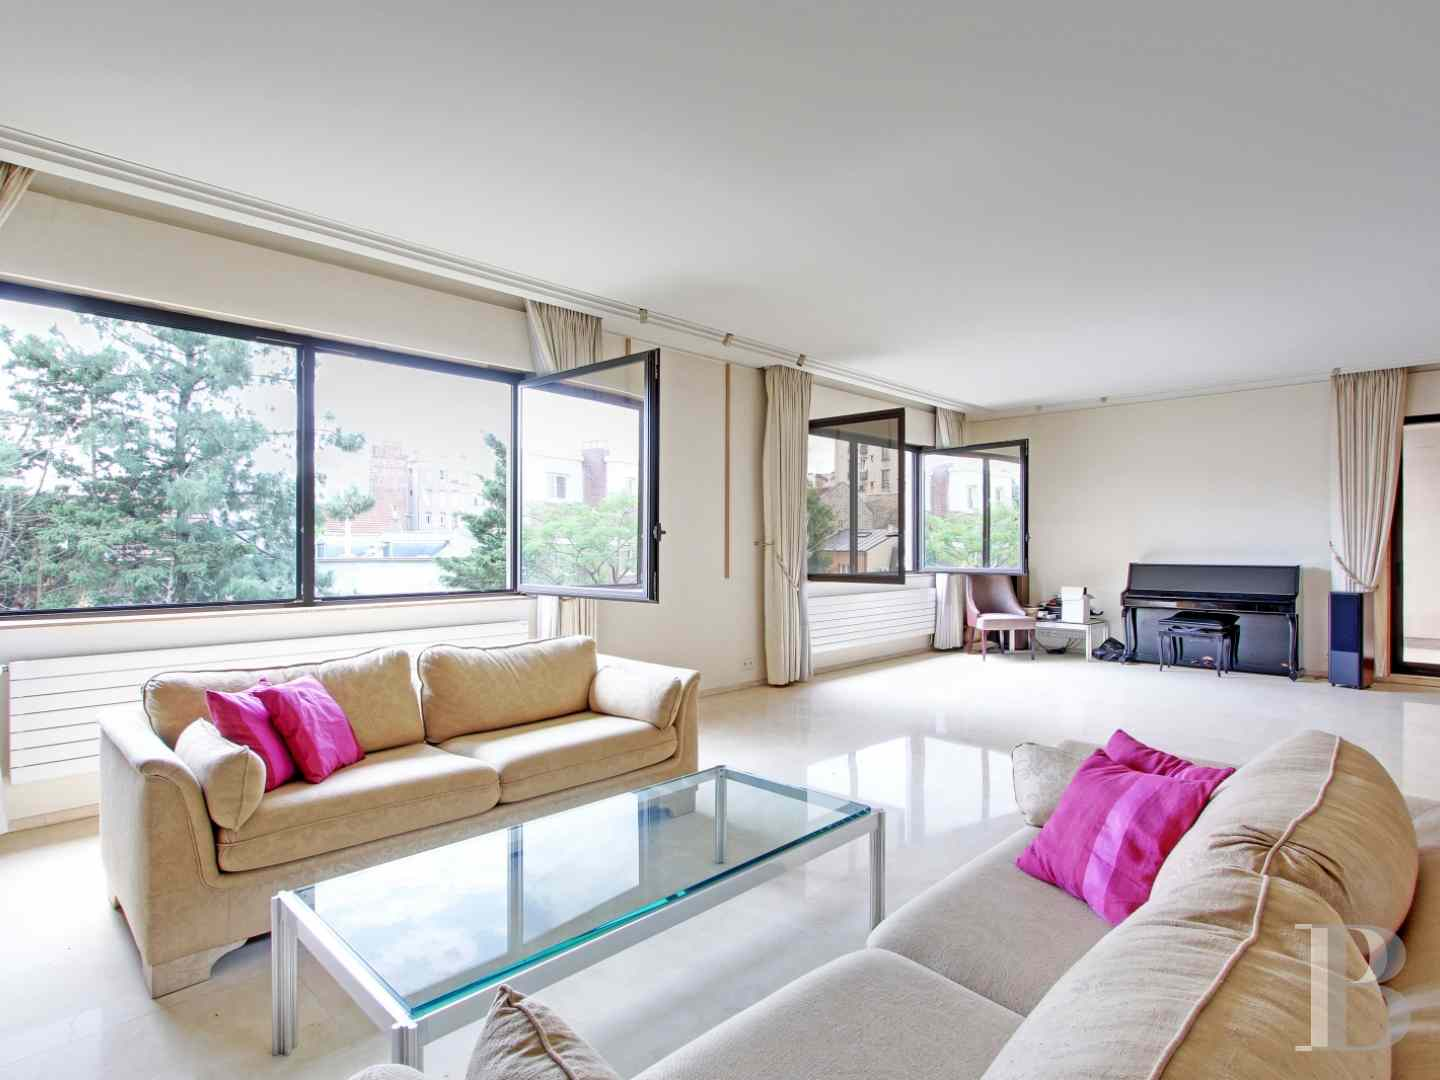 property for sale France paris residences mansion - 4 zoom